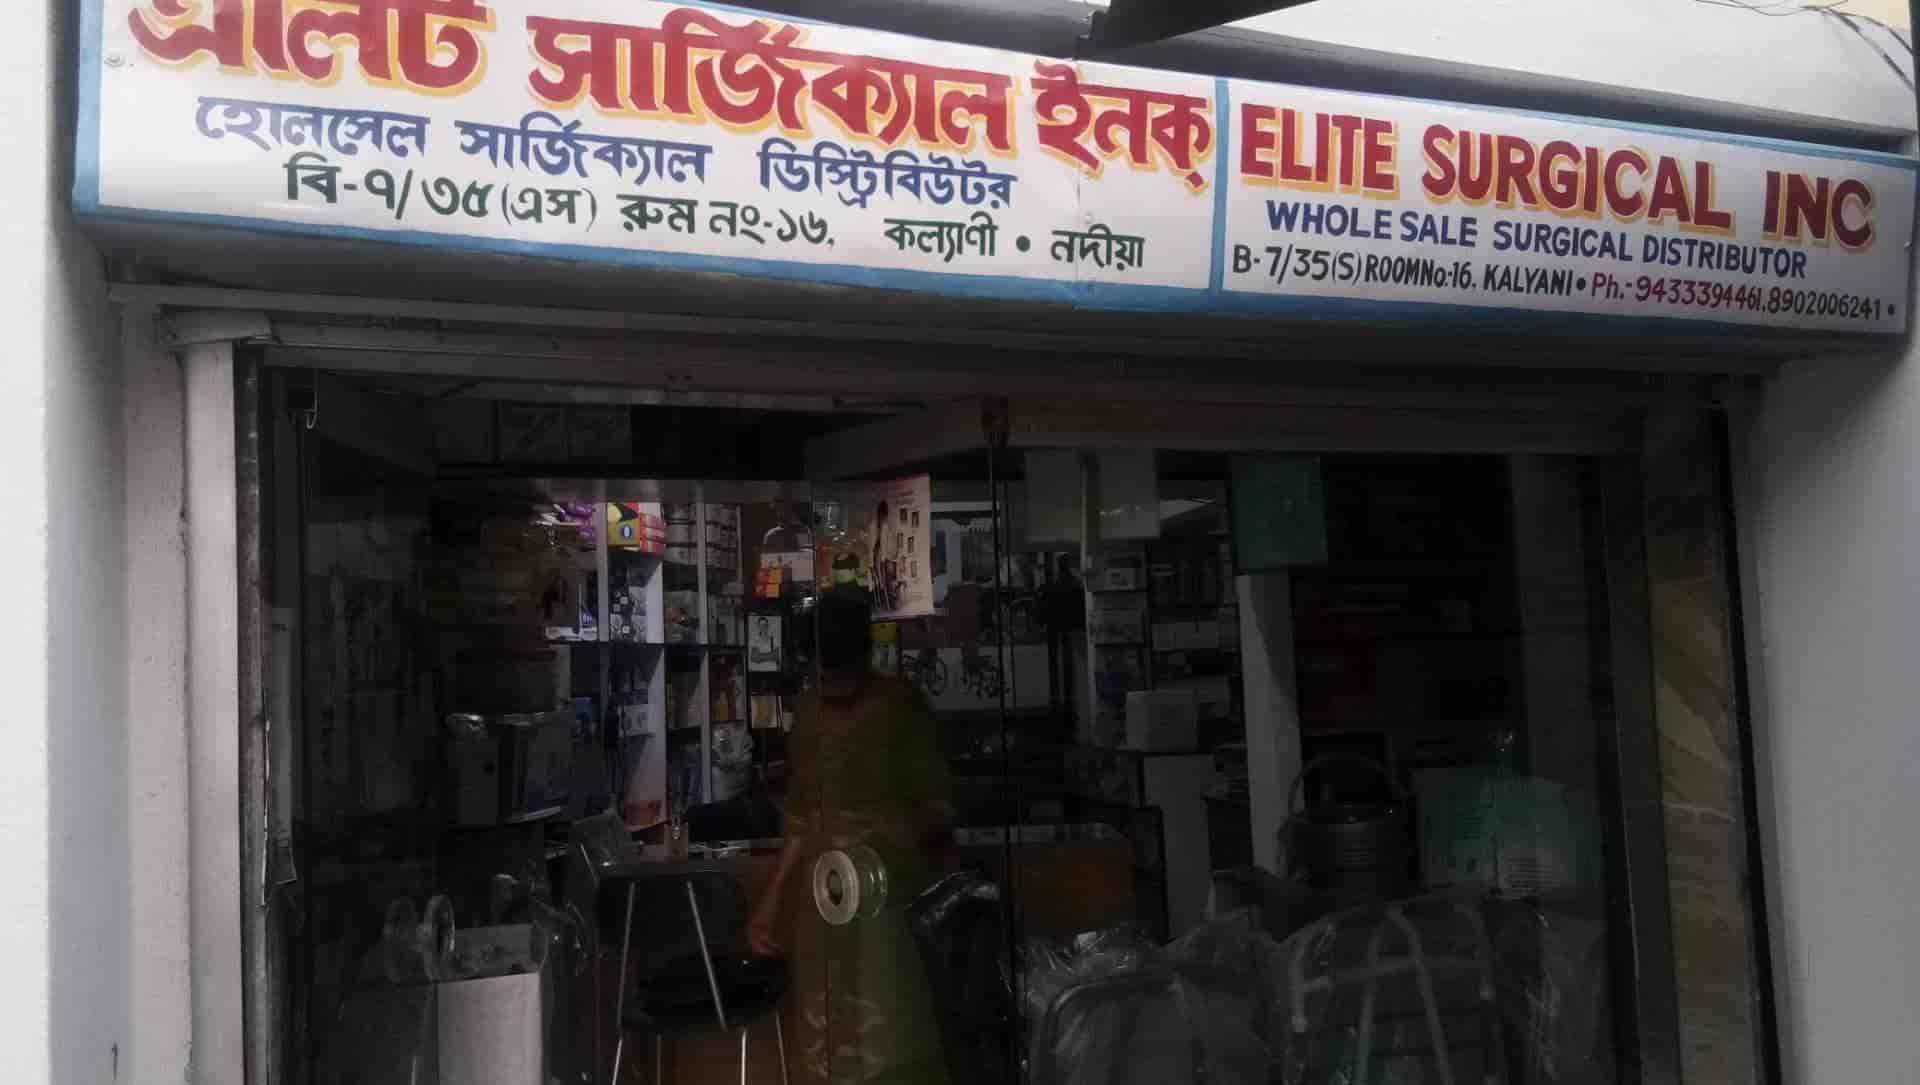 Elite Surgical Inc - Surgical Equipment Dealers in Kalyani - Justdial